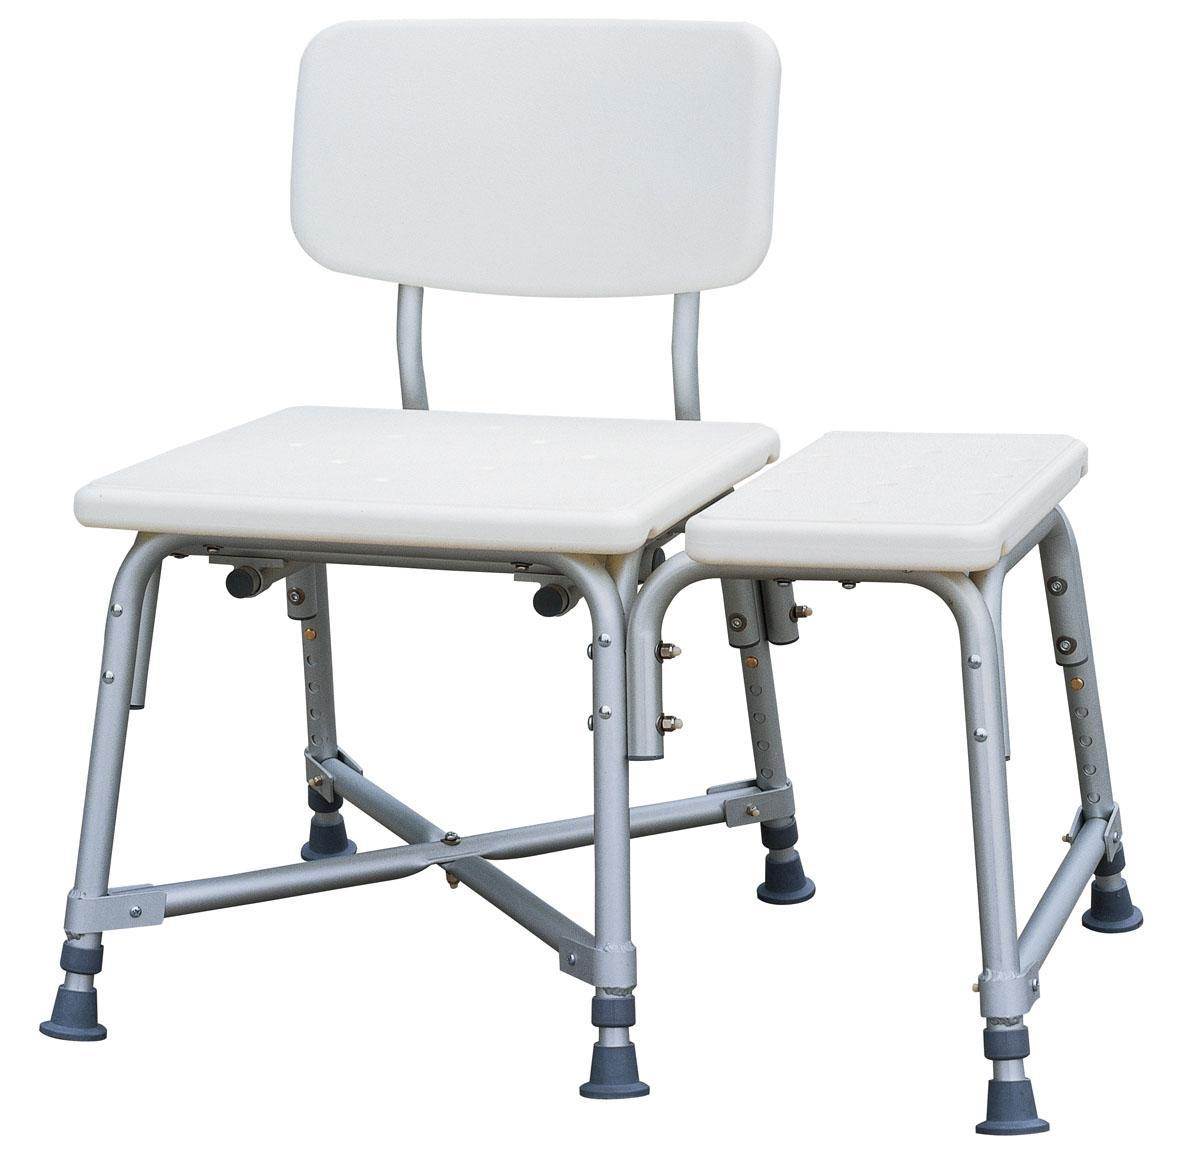 Medline Bariatric Heavy Duty Medical Transfer Bench, with Adjustable Height  and 6 Heavy Duty Supporting